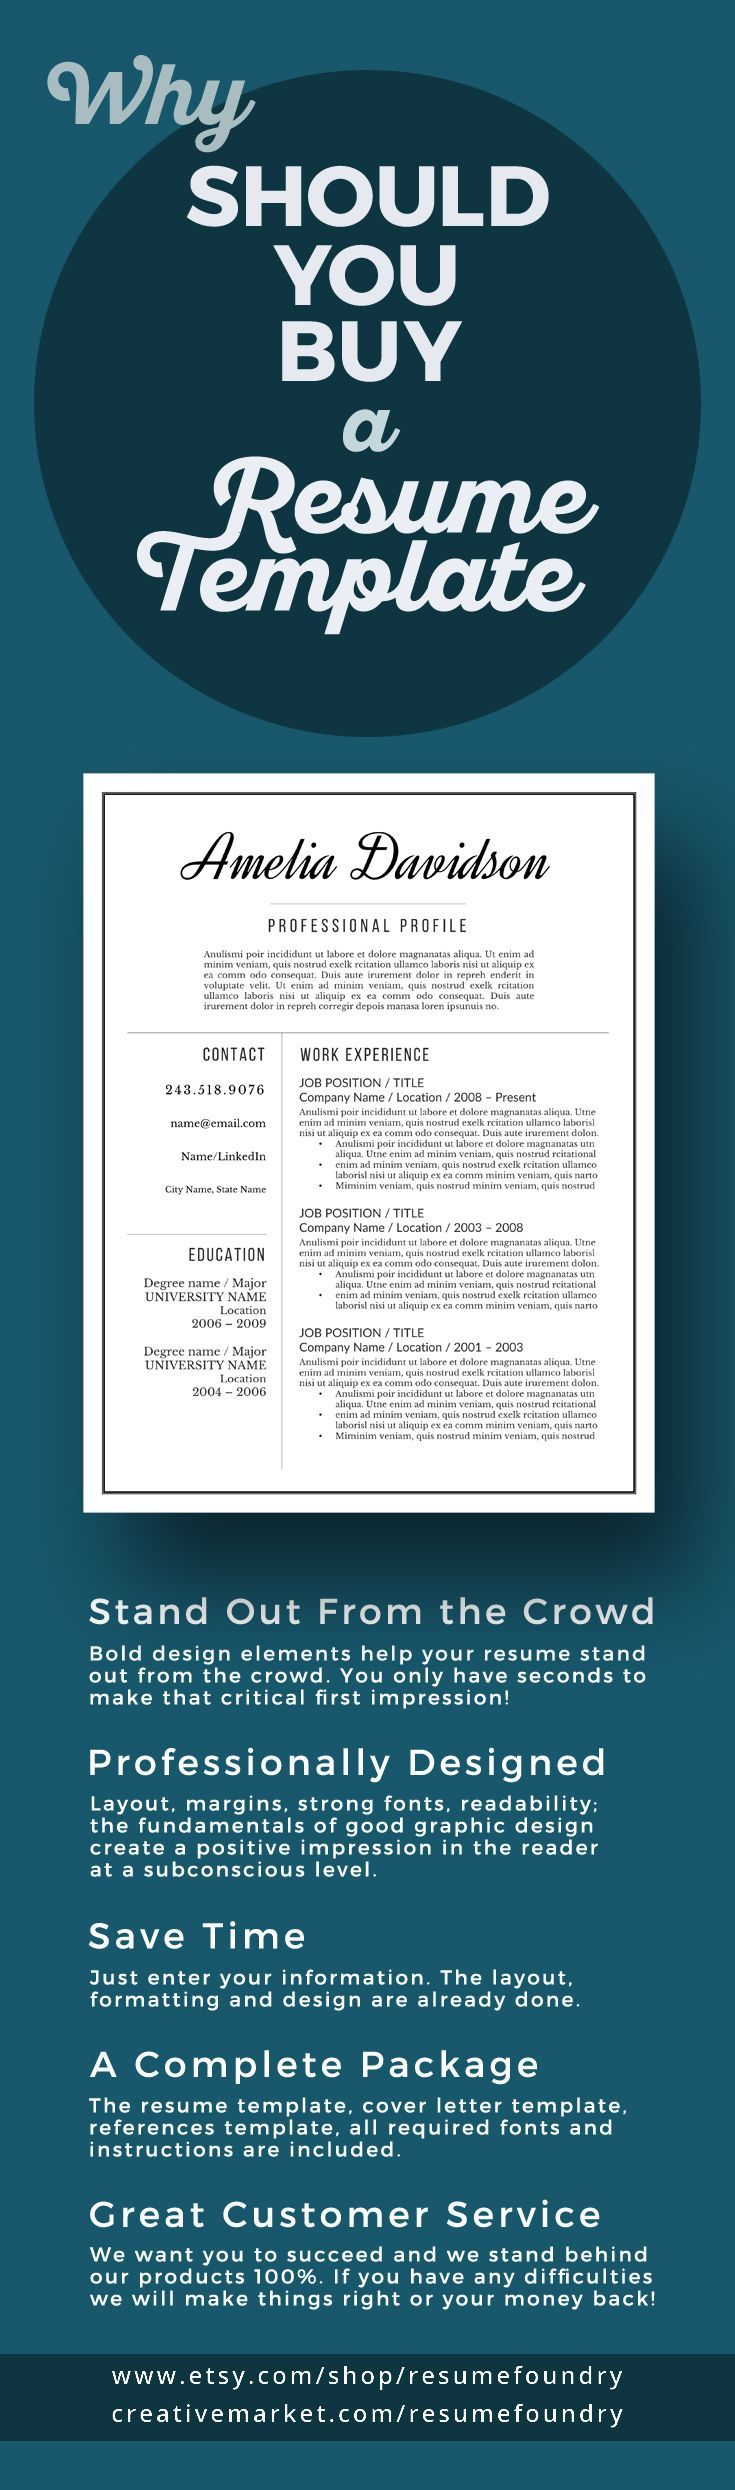 Functional Resume Template Microsoft%0A Want to improve your chances of being noticed by recruiters  use a resume  template designed